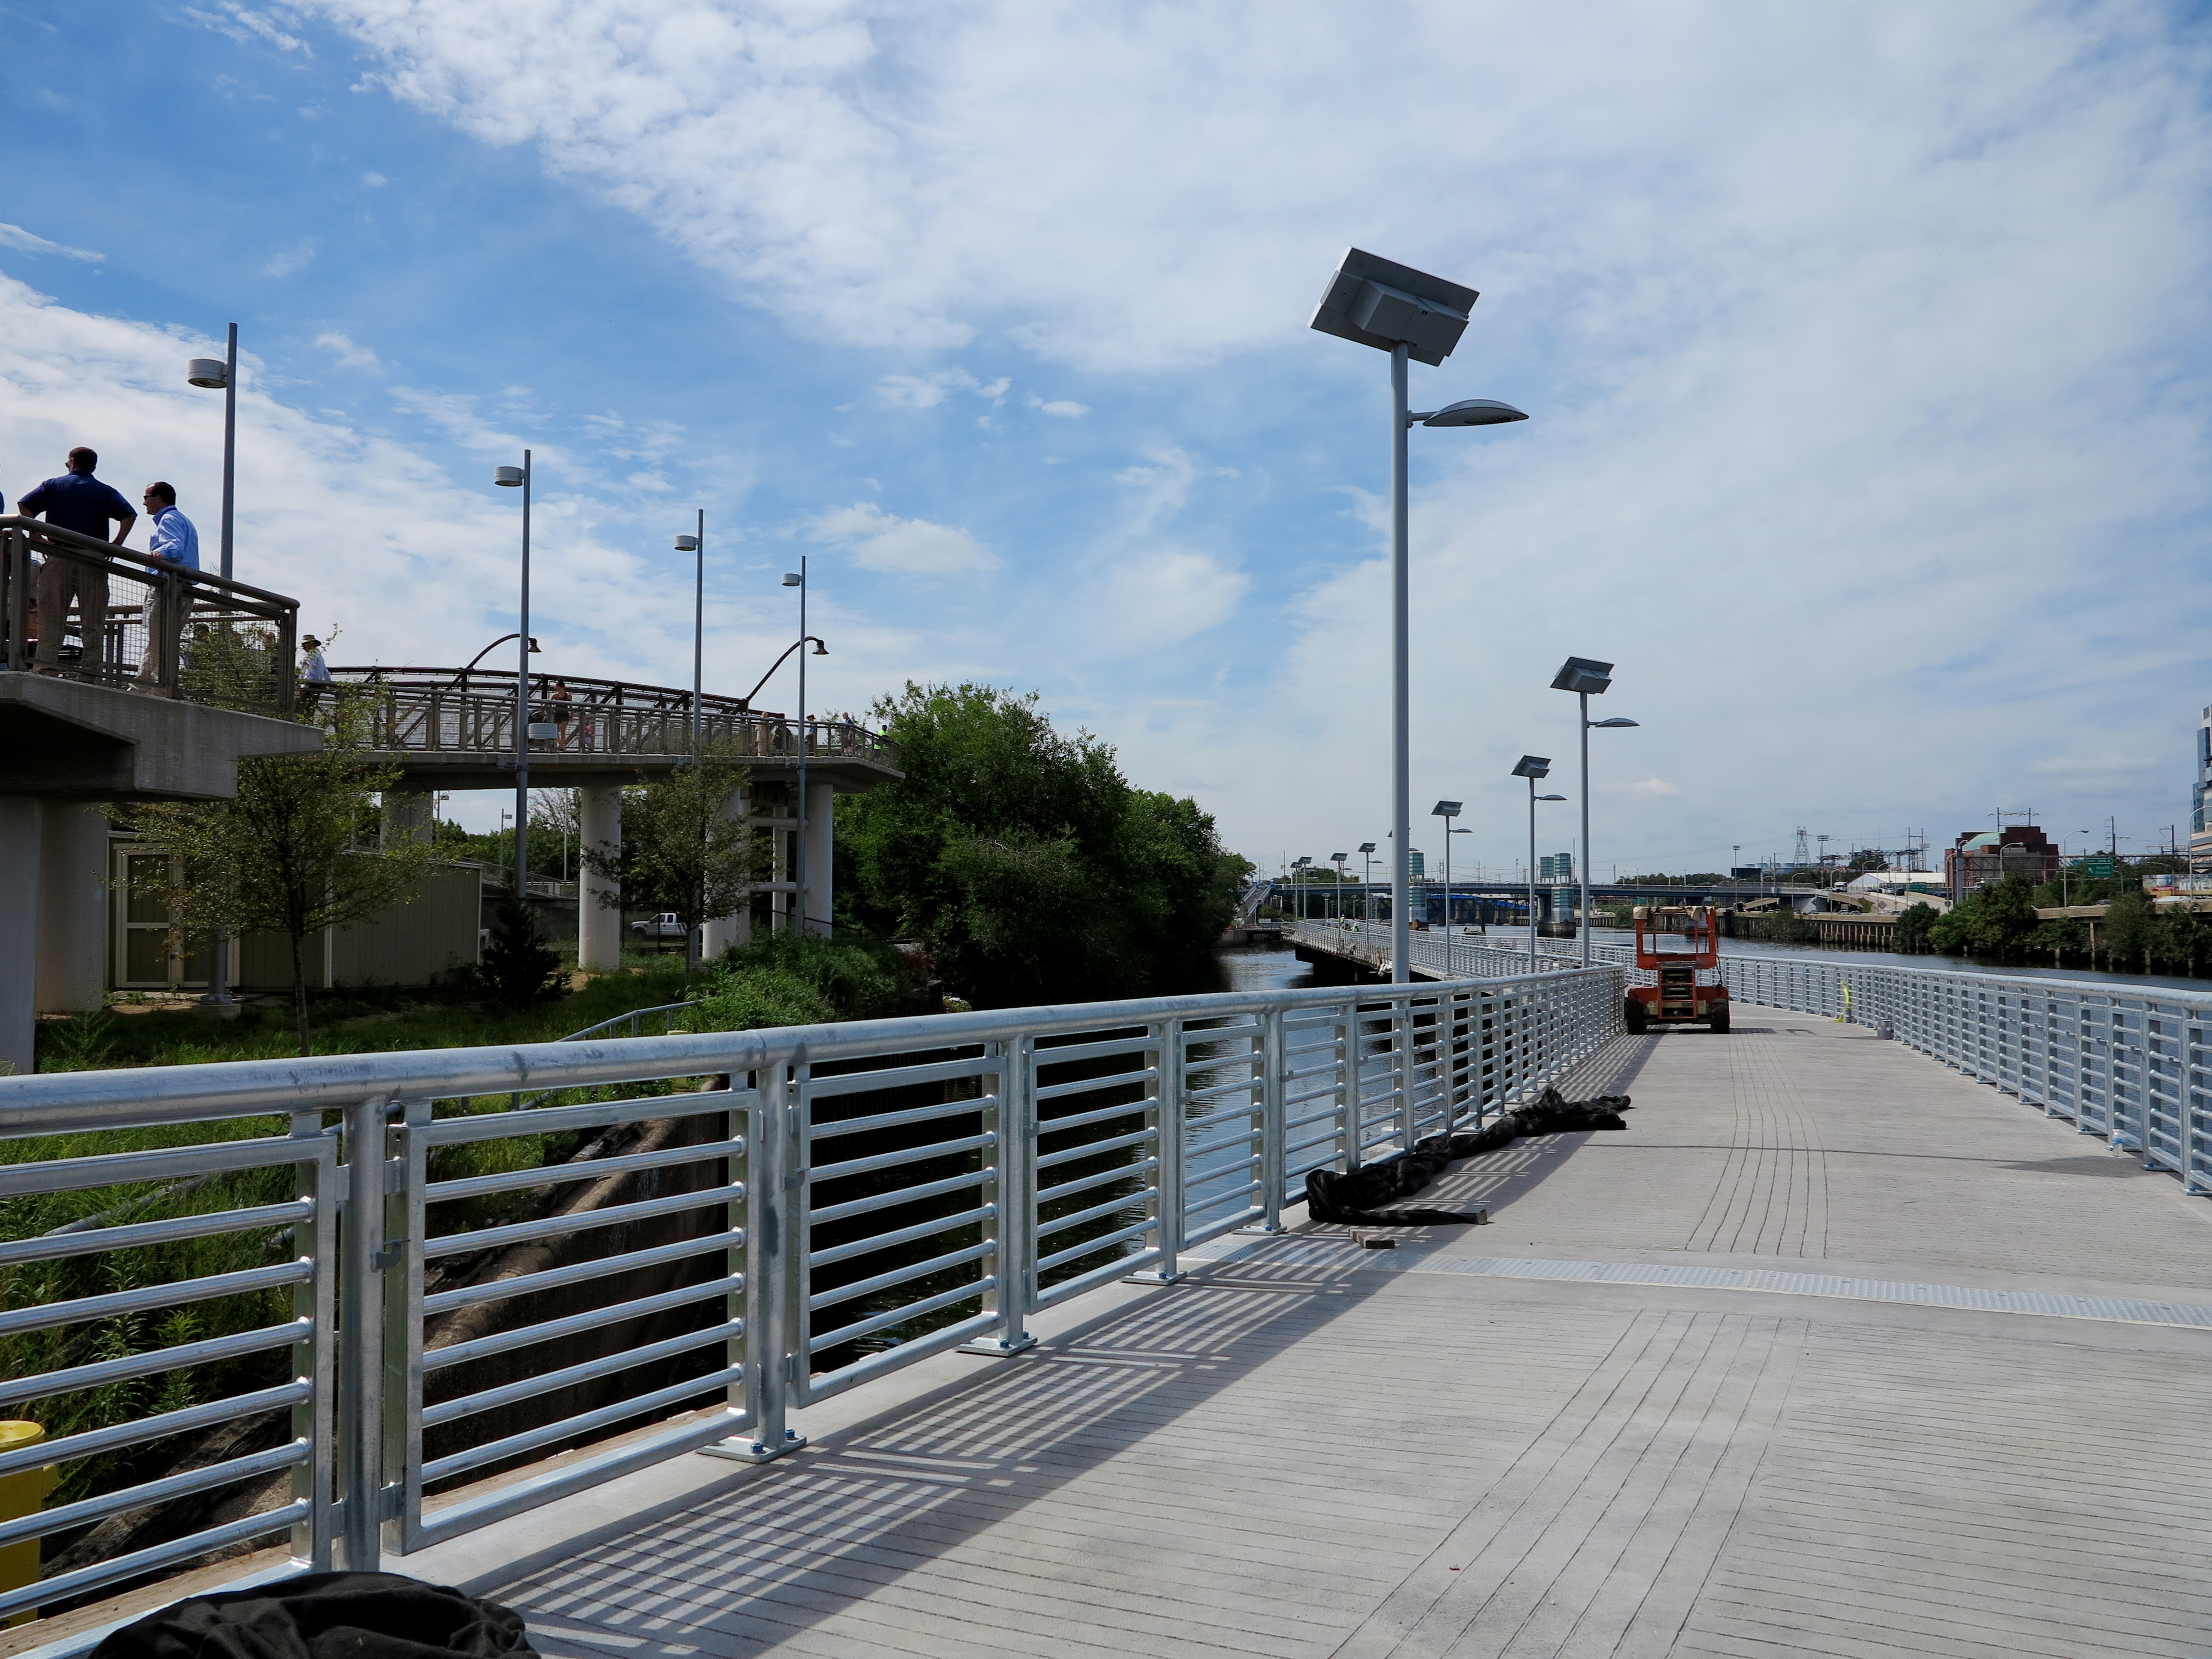 The Connector Bridge runs parallel to and overlooks the new boardwalk